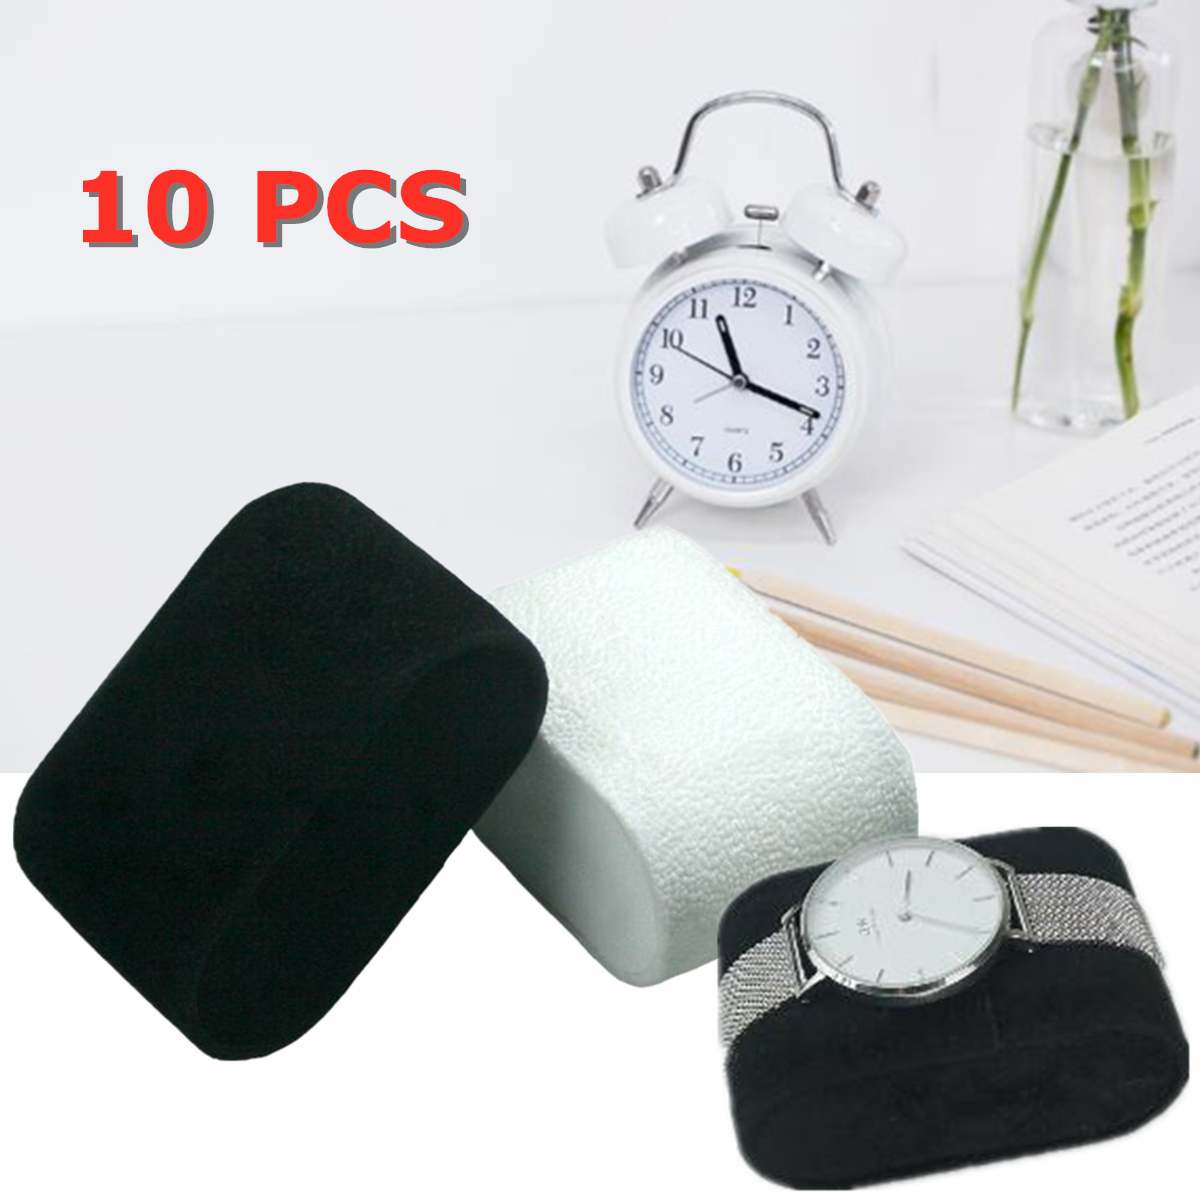 10pcs Velvet Bracelet Bangle Watch Pillow Holder For Jewelry Watches Case Box Jewelry Packaging & Display Watch Accessories